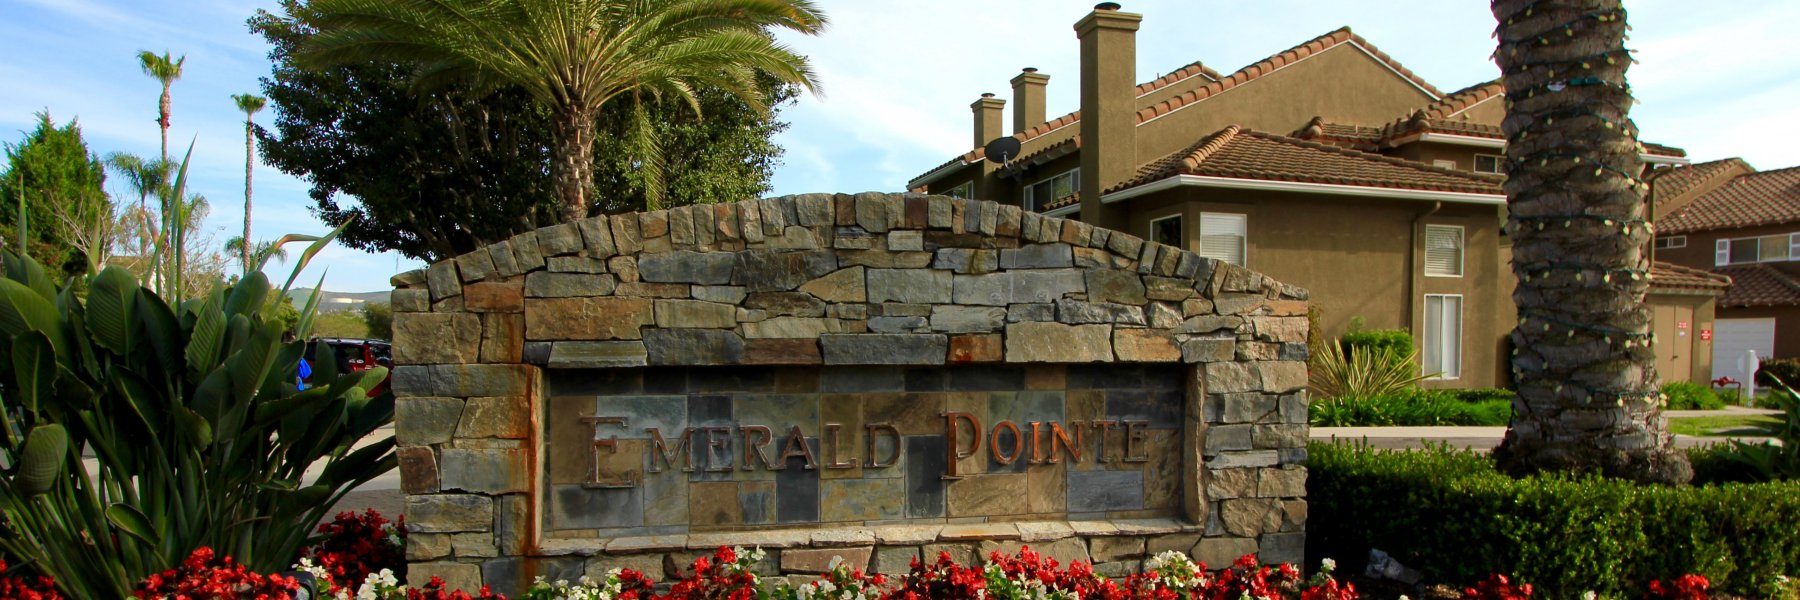 Emerald Pointe is a community of homes in Mission Viejo California